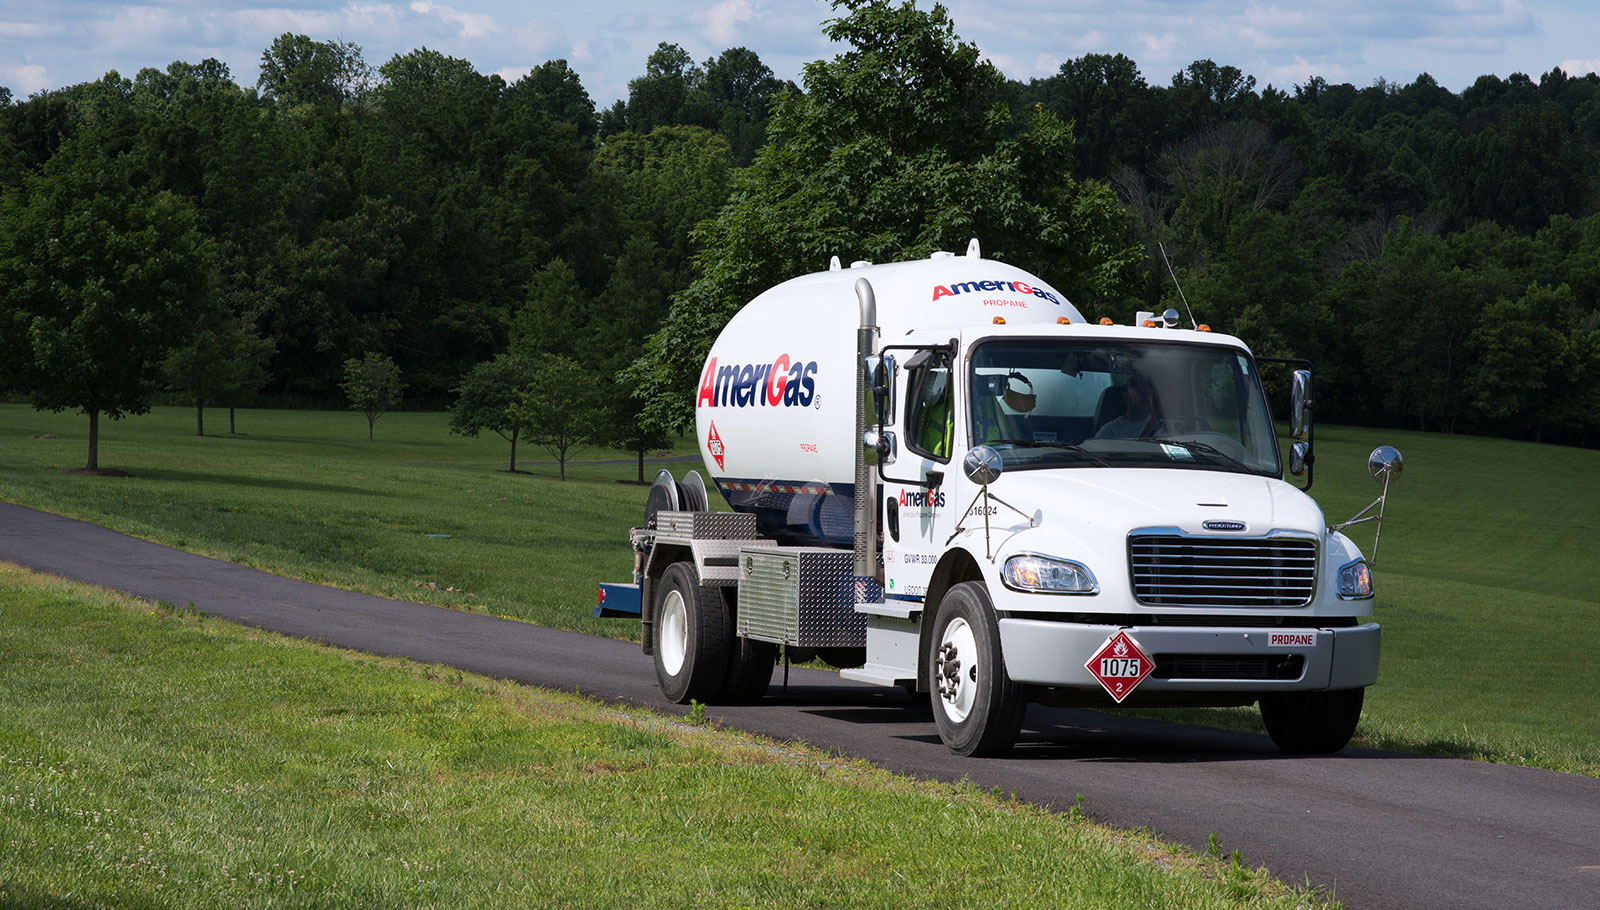 AmeriGas tanker truck on a rural road.